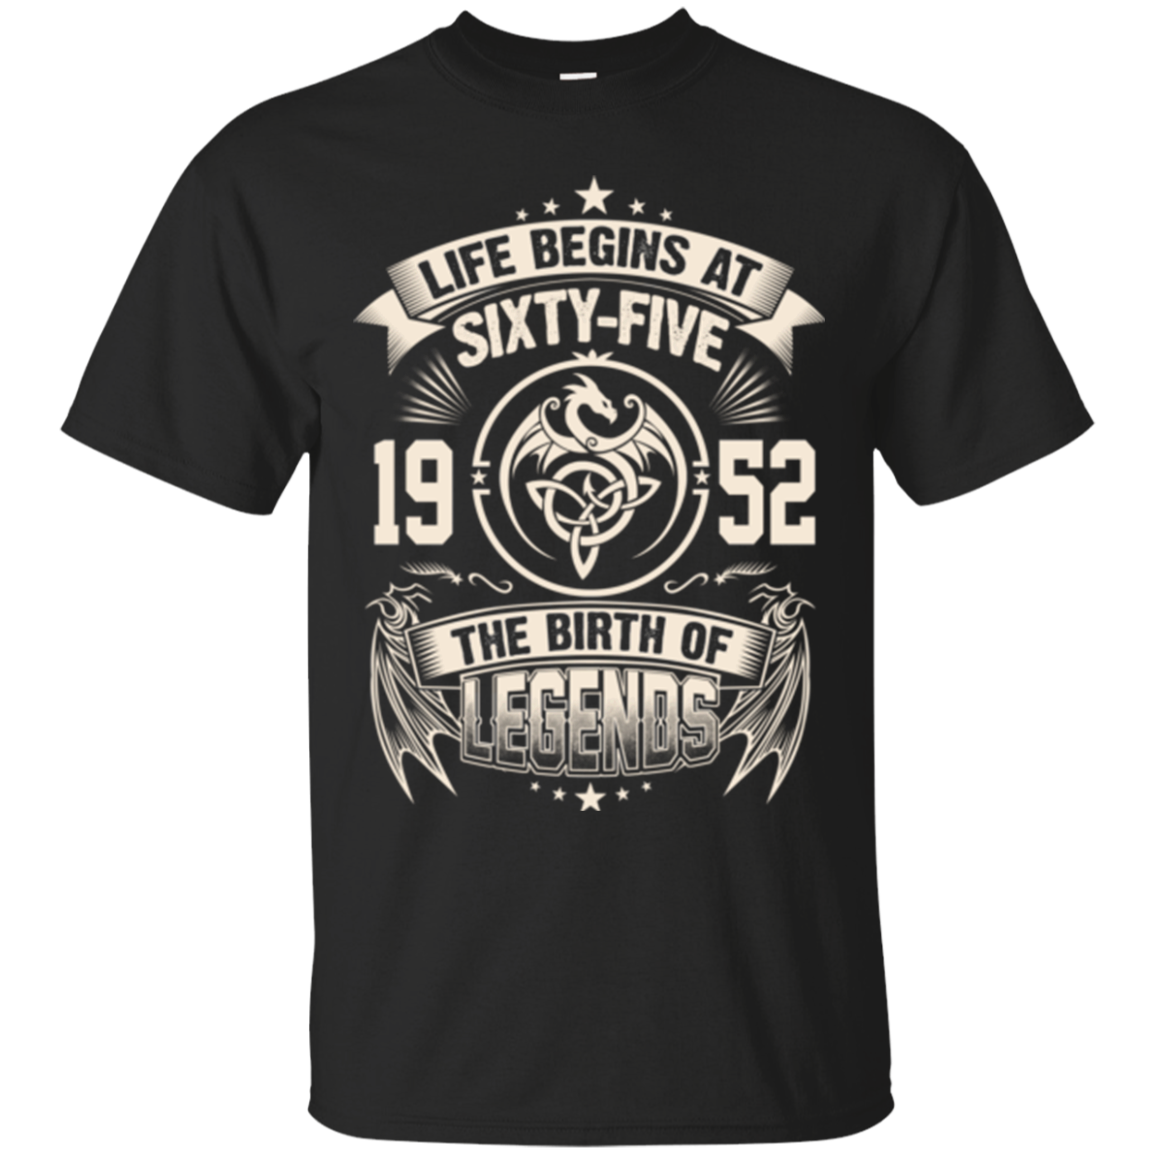 1952 Shirts The Birth Of Legends Hoodies Sweatshirts